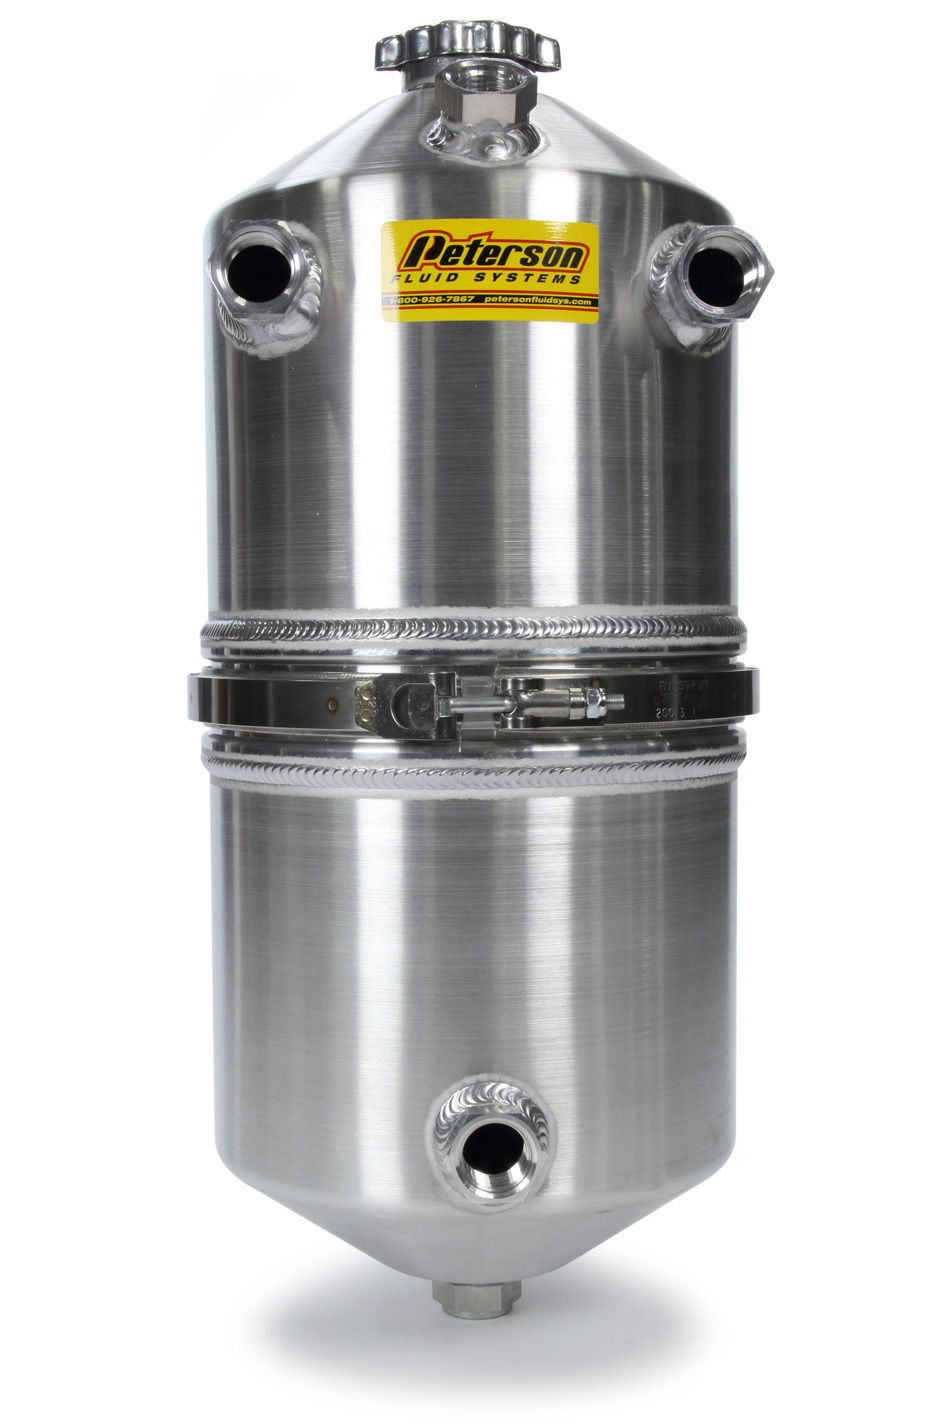 Peterson Fluid 08-0014 Oil Tank, Dry Sump, 20 qt, 22 in Tall, 9 in OD, 12 AN Female O-Ring Inlet, 12 AN Female O-Ring Outlet, 12 AN Female O-Ring Breather Ports, Aluminum, Natural, Each